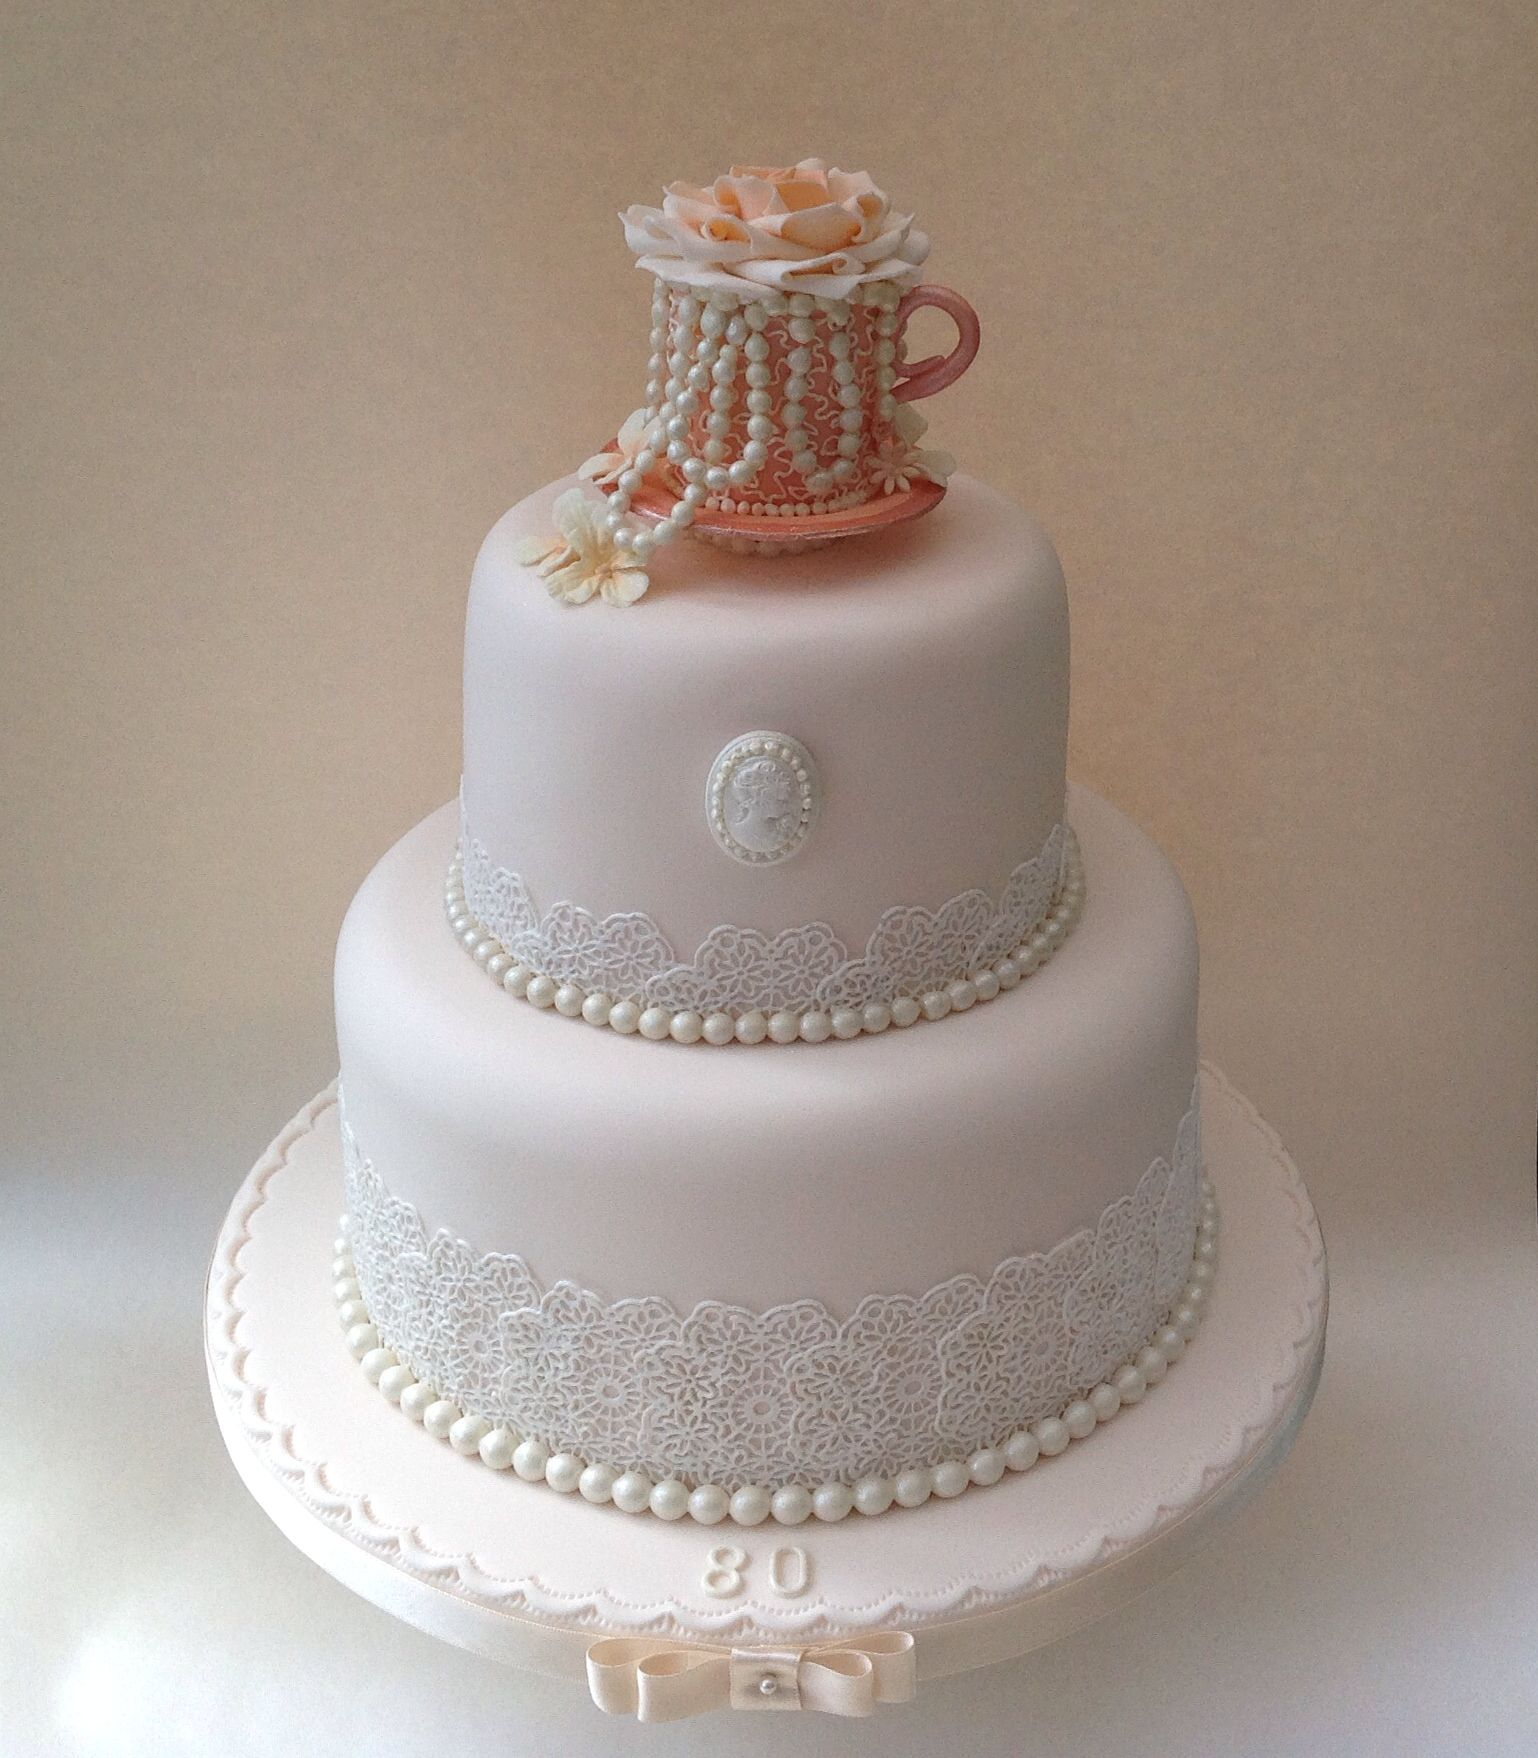 Vintage Lace Pearls And Teacup 80th Birthday Cake